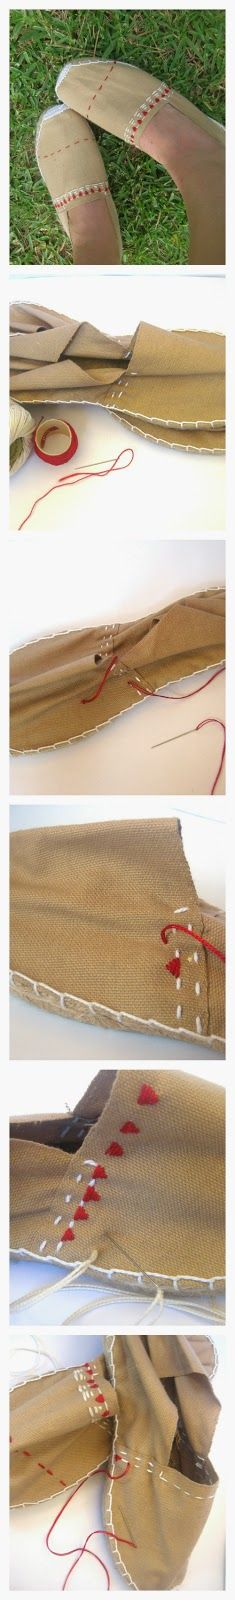 DIY Espadrilles tutorial